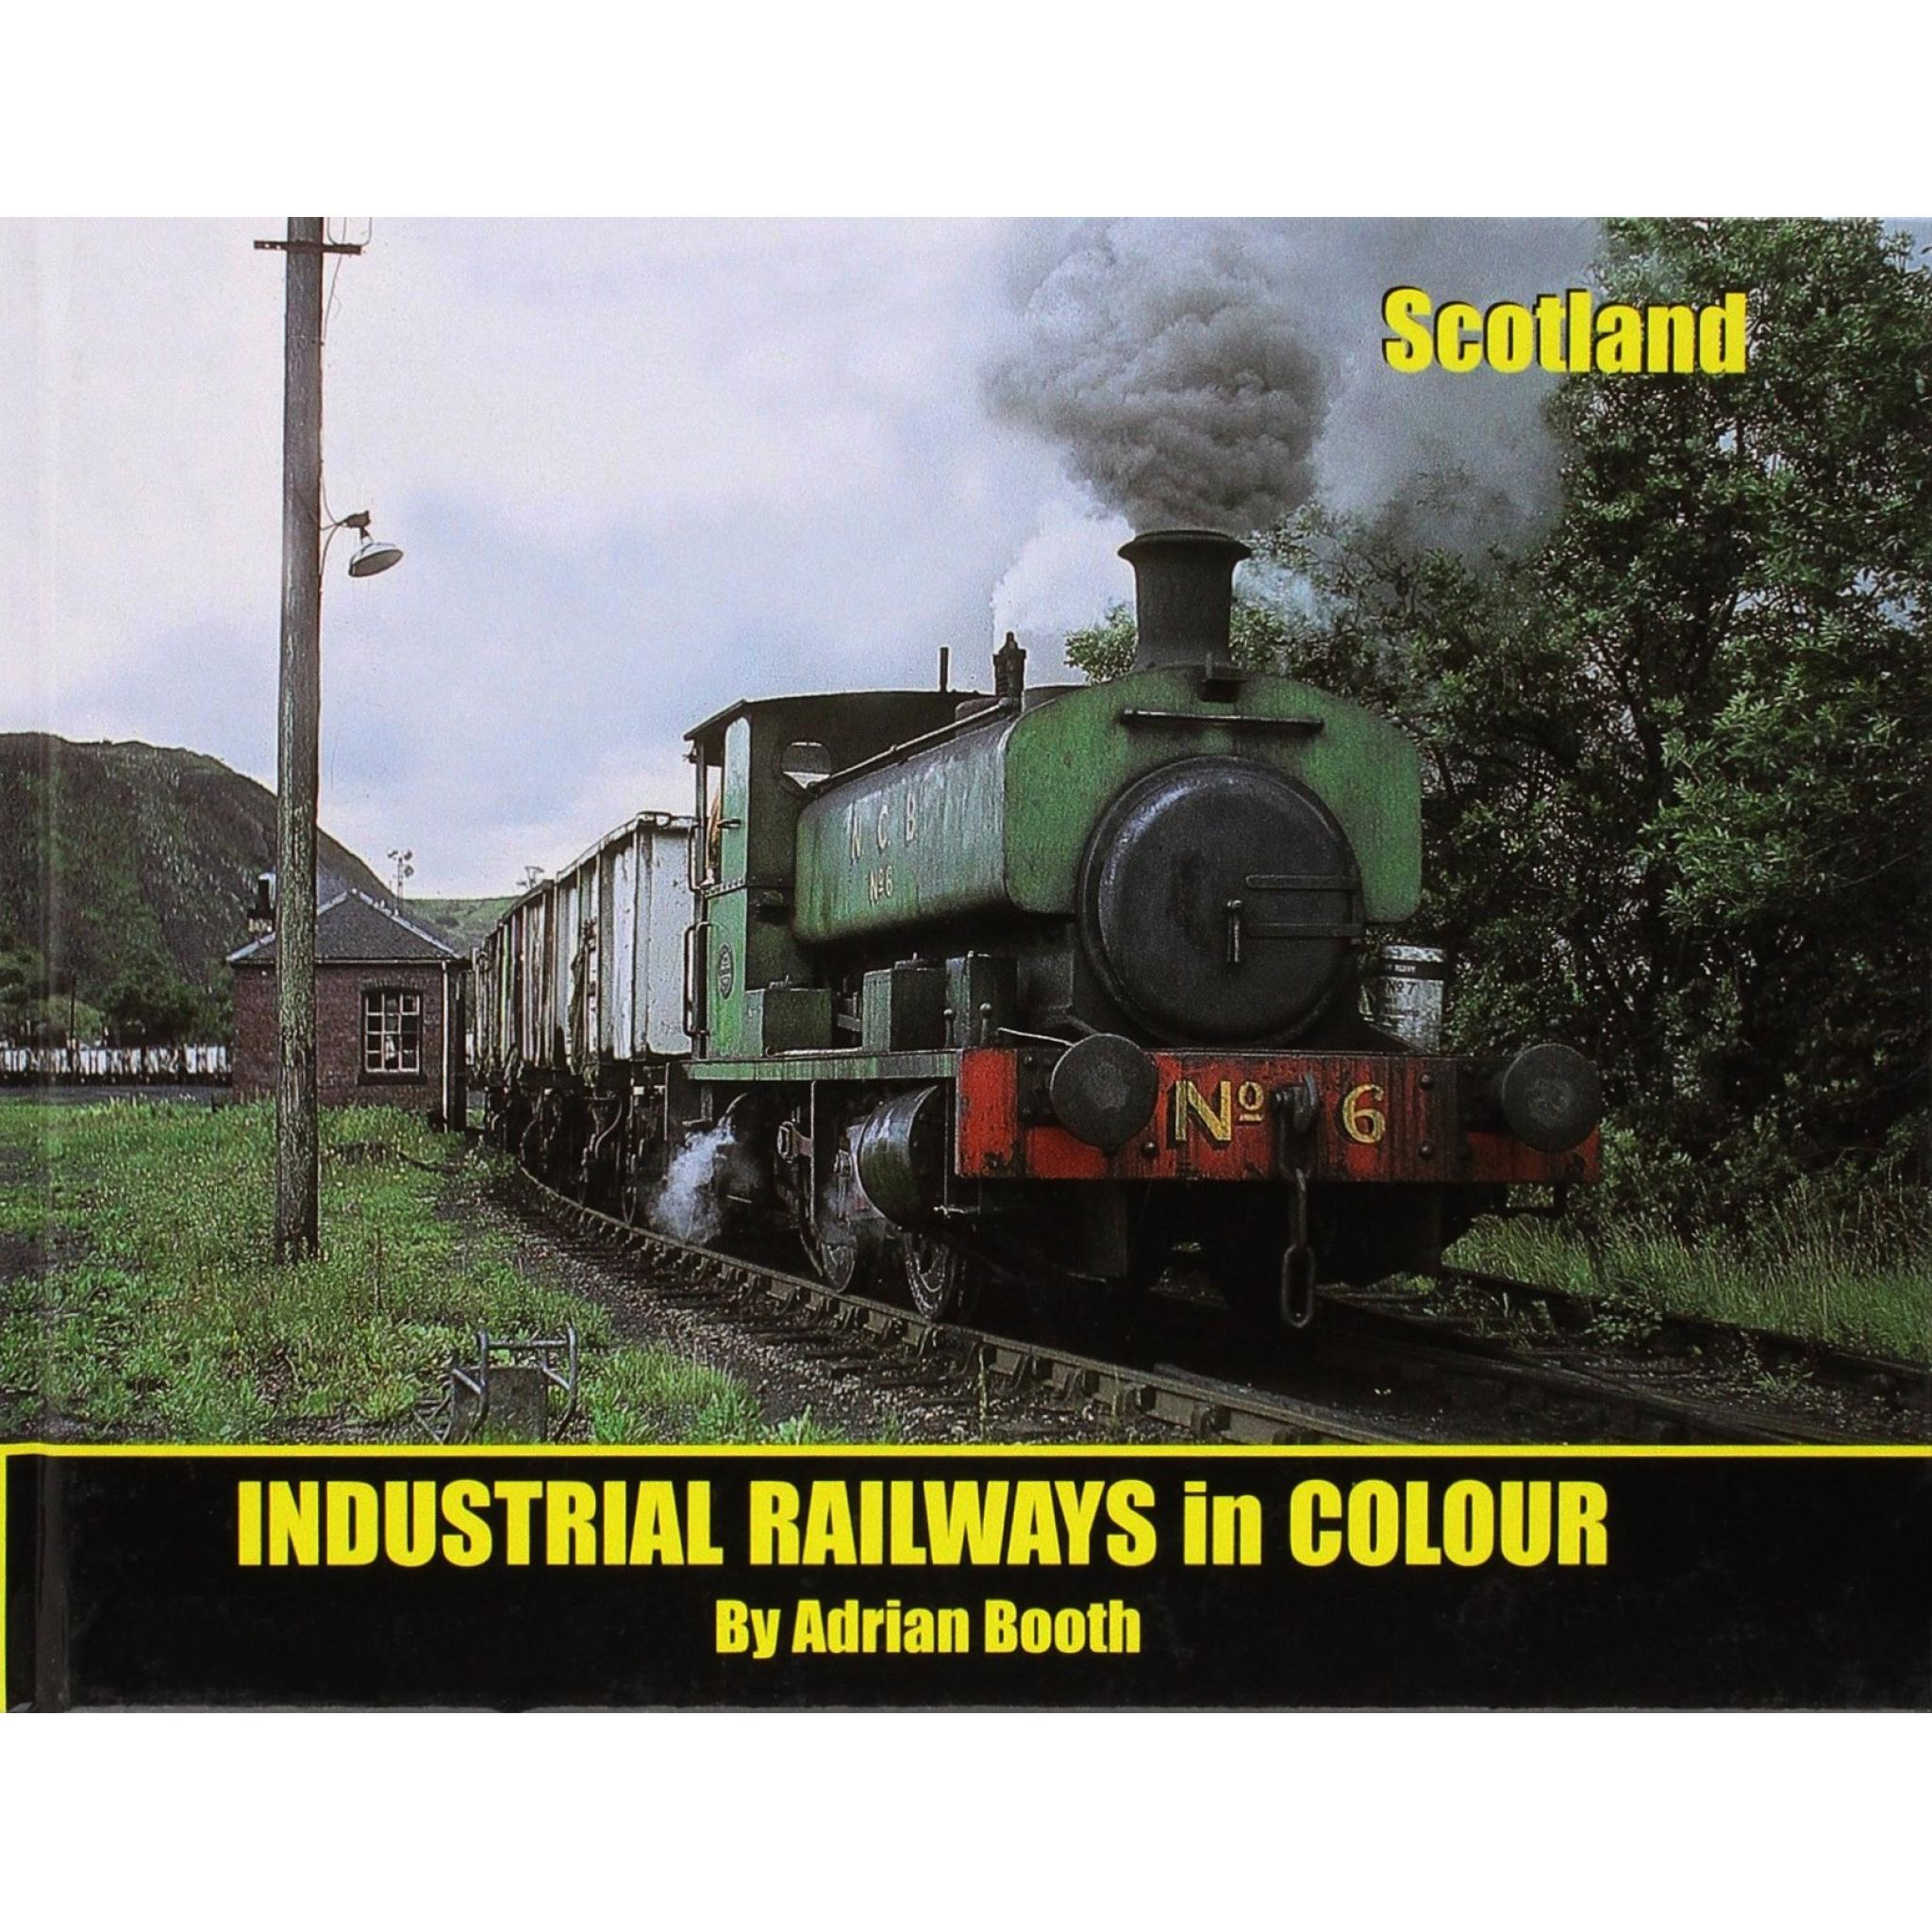 INDUSTRIAL RAILWAYS IN COLOUR - SCOTLAND    FLASH SALE 50% OFF 14 - 17 MAY 2021 ONLY